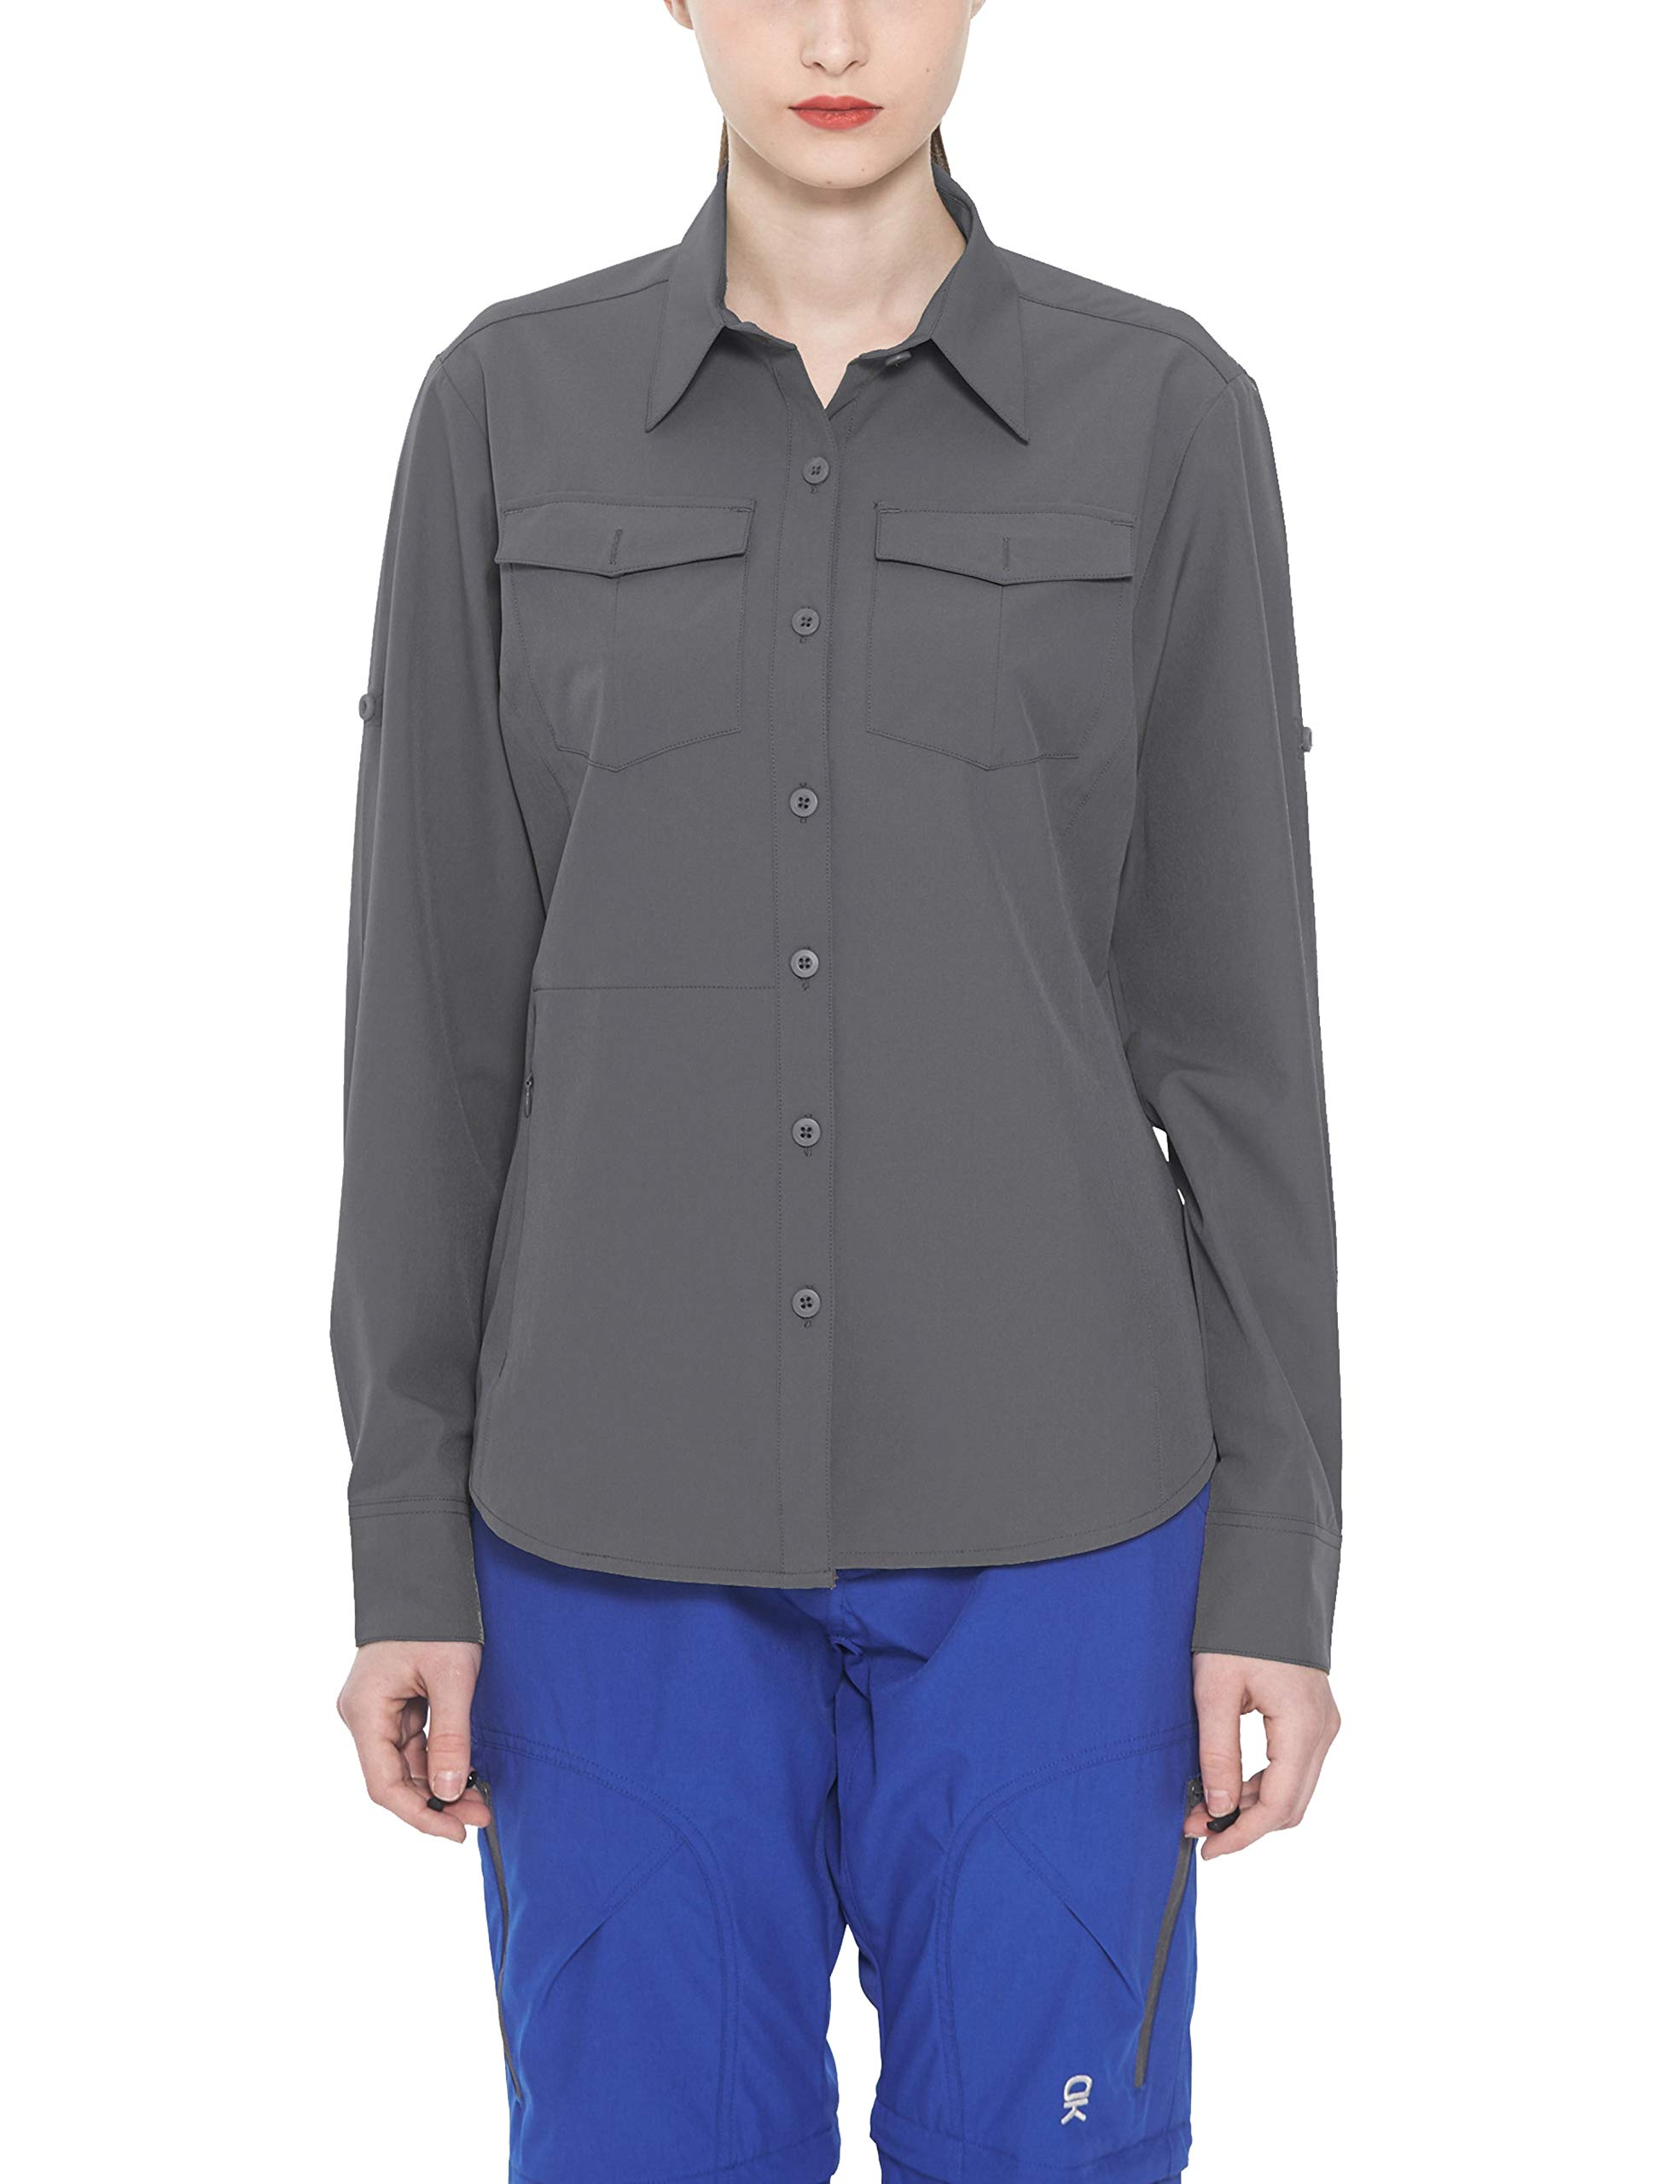 Little Donkey Andy Women's Stretch Quick Dry Water Resistant Outdoor Shirts UPF50+ for Hiking, Travel, Camping Grey Size L by Little Donkey Andy